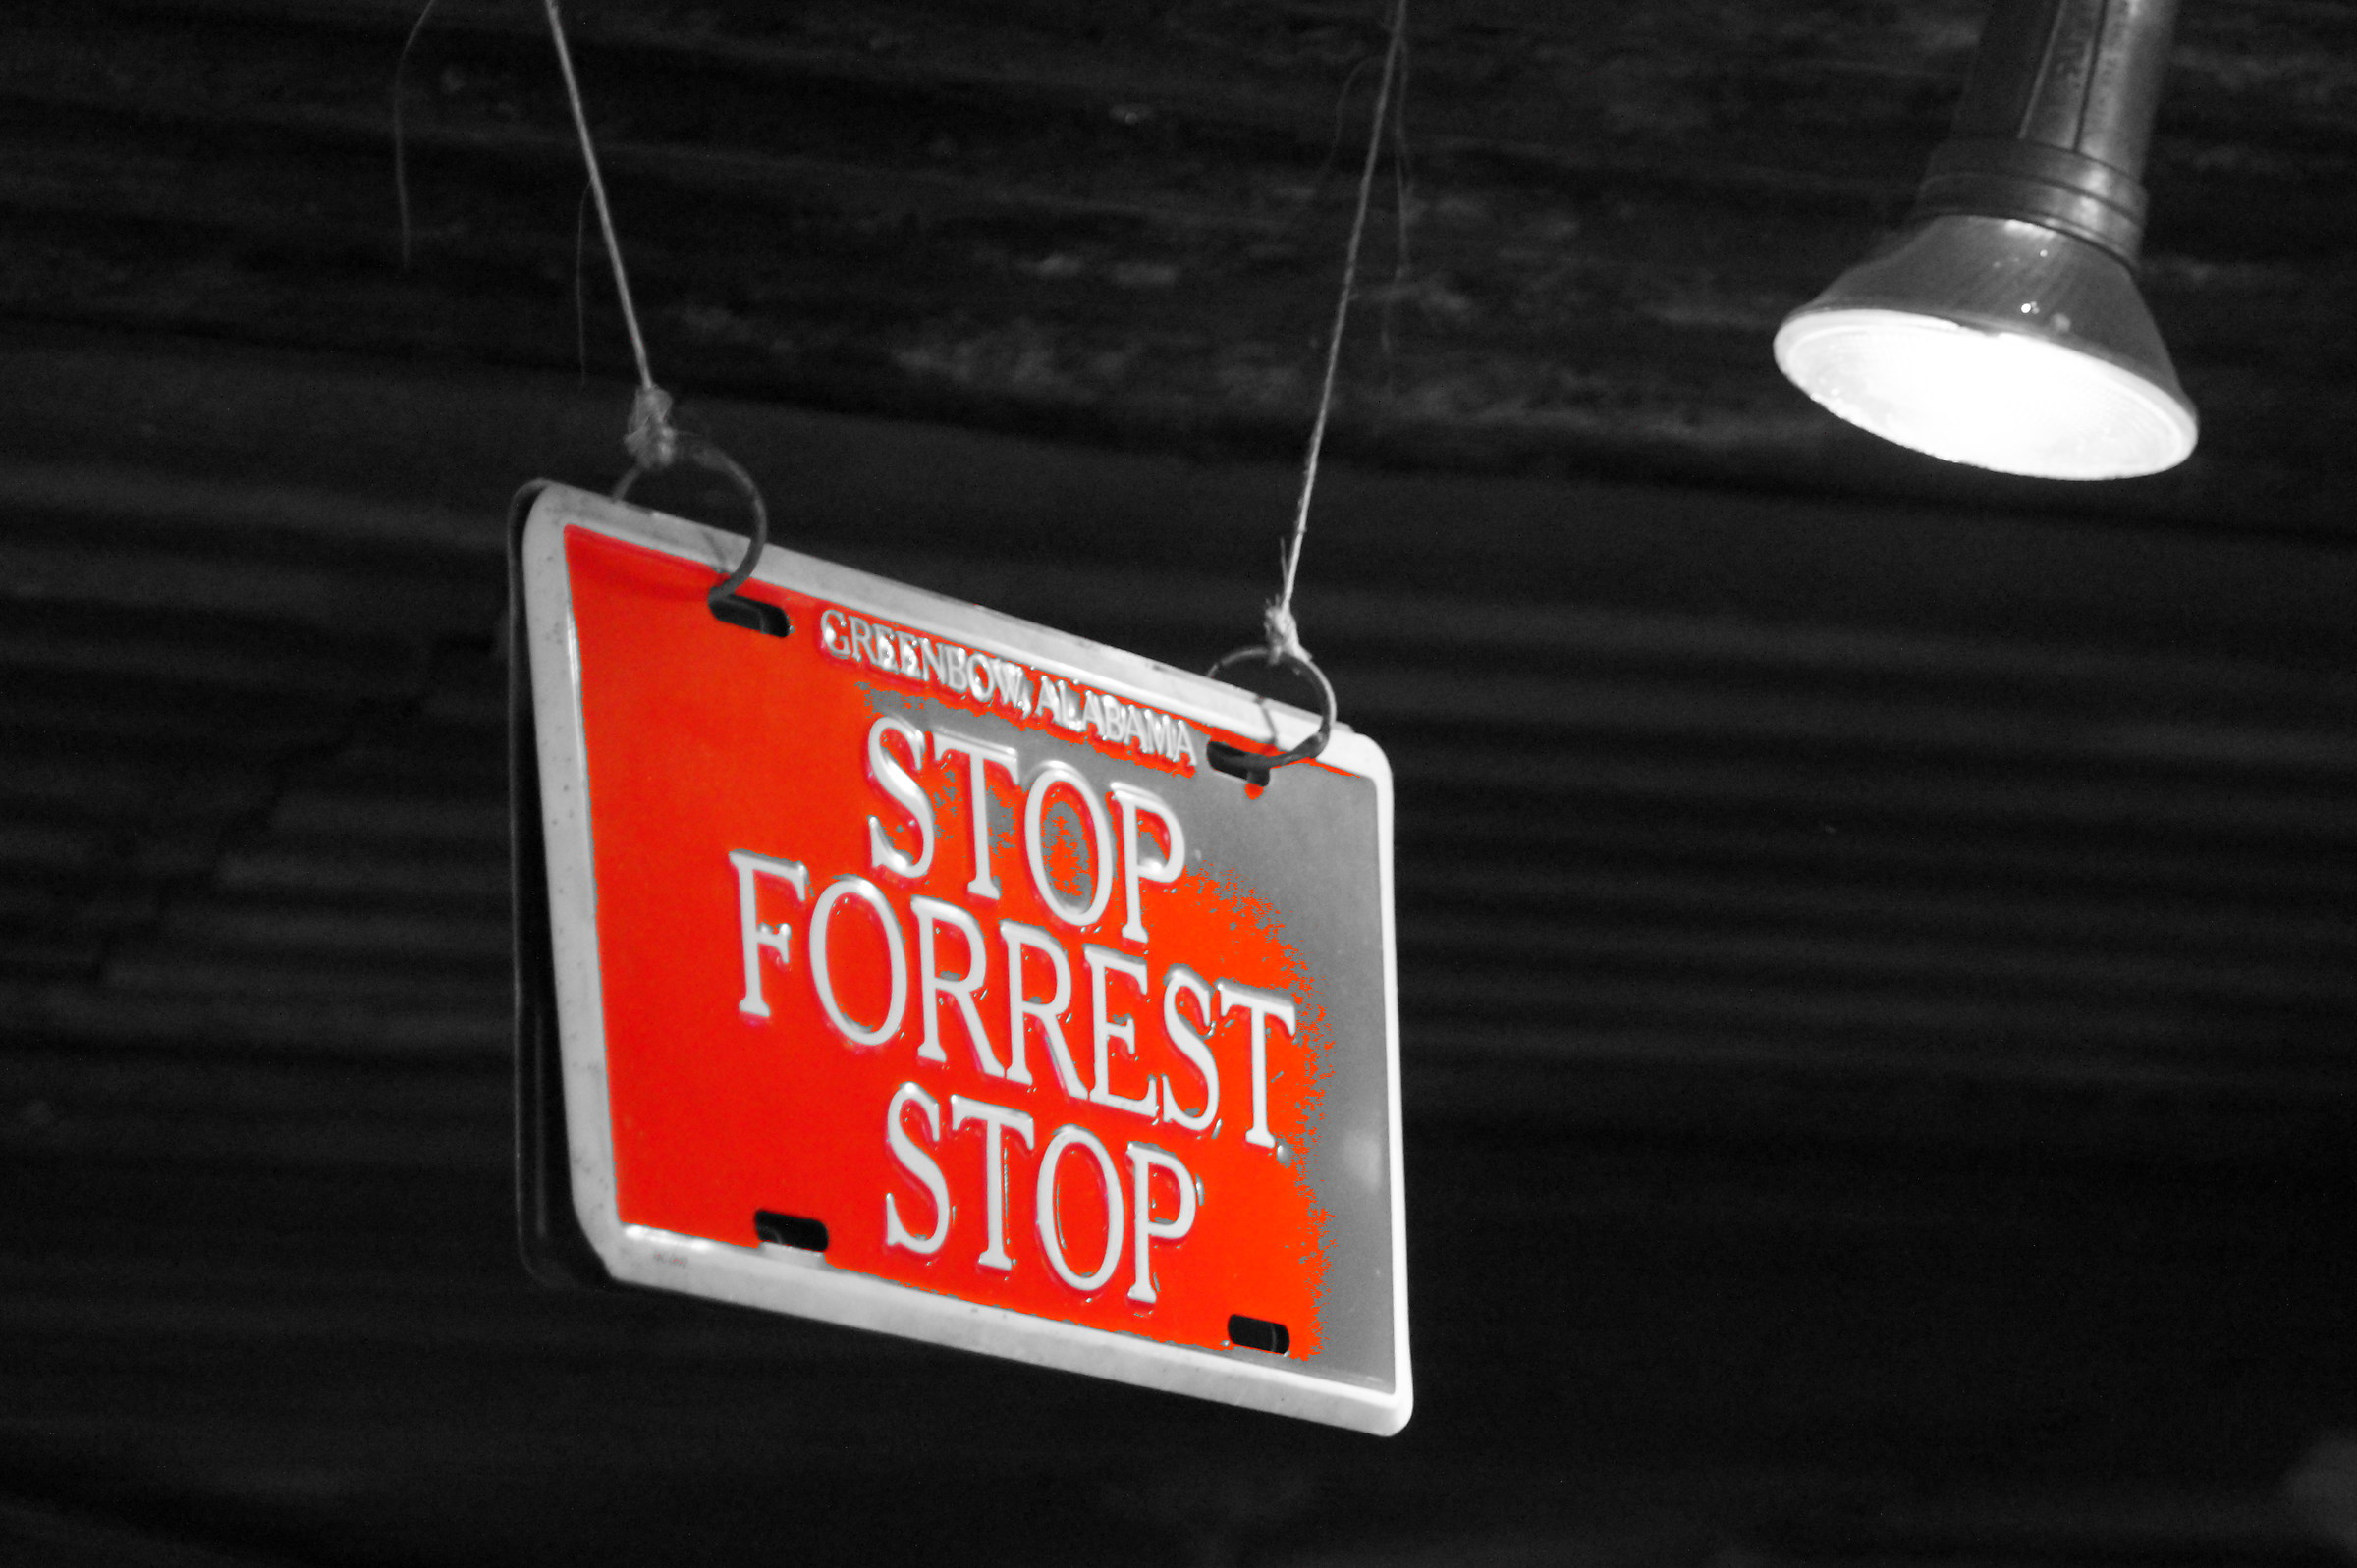 Stop Forrest Stop...